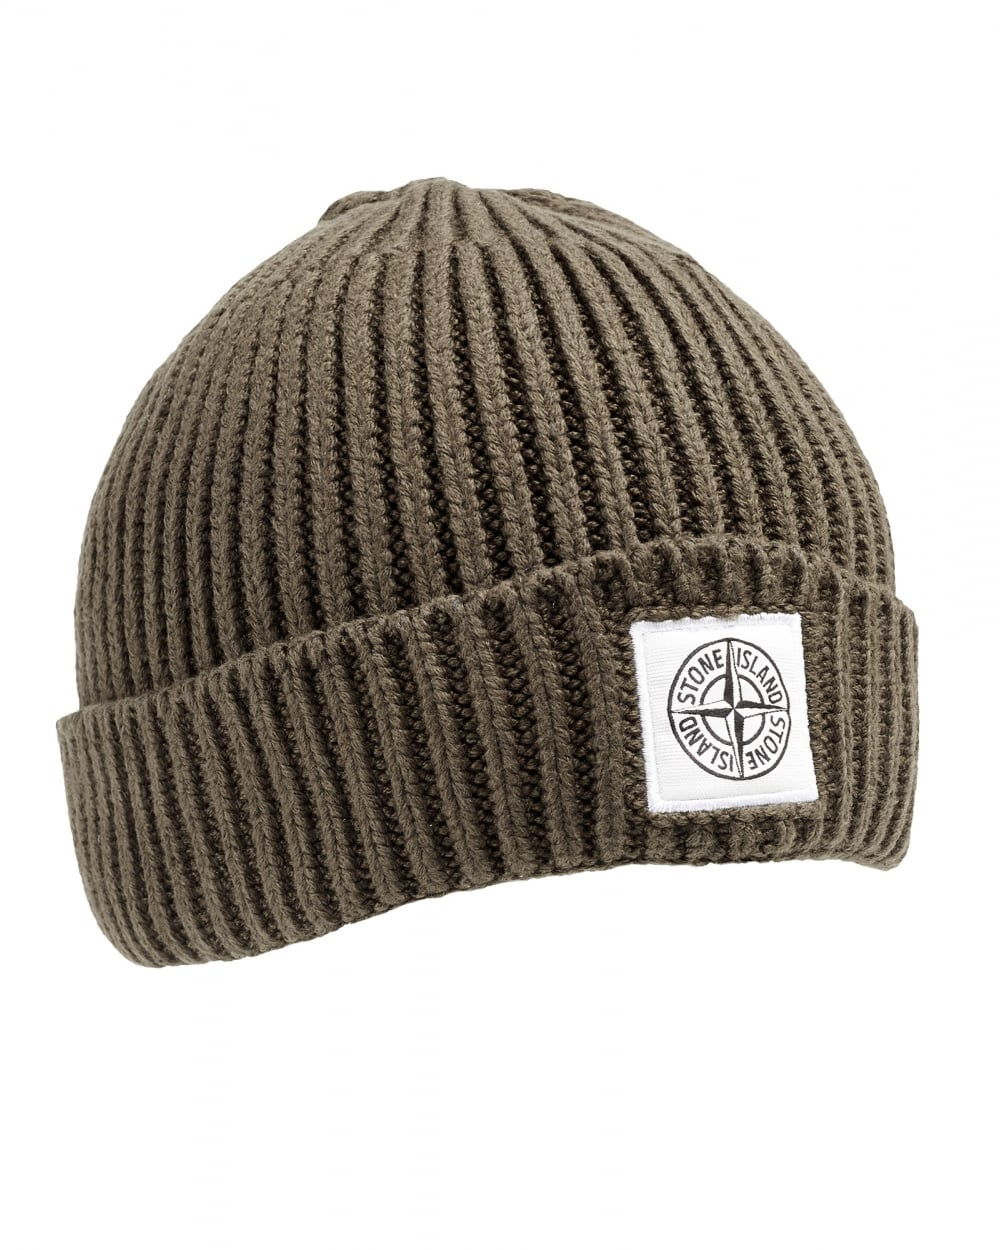 Find great deals on eBay for mens wool beanie. Shop with confidence.